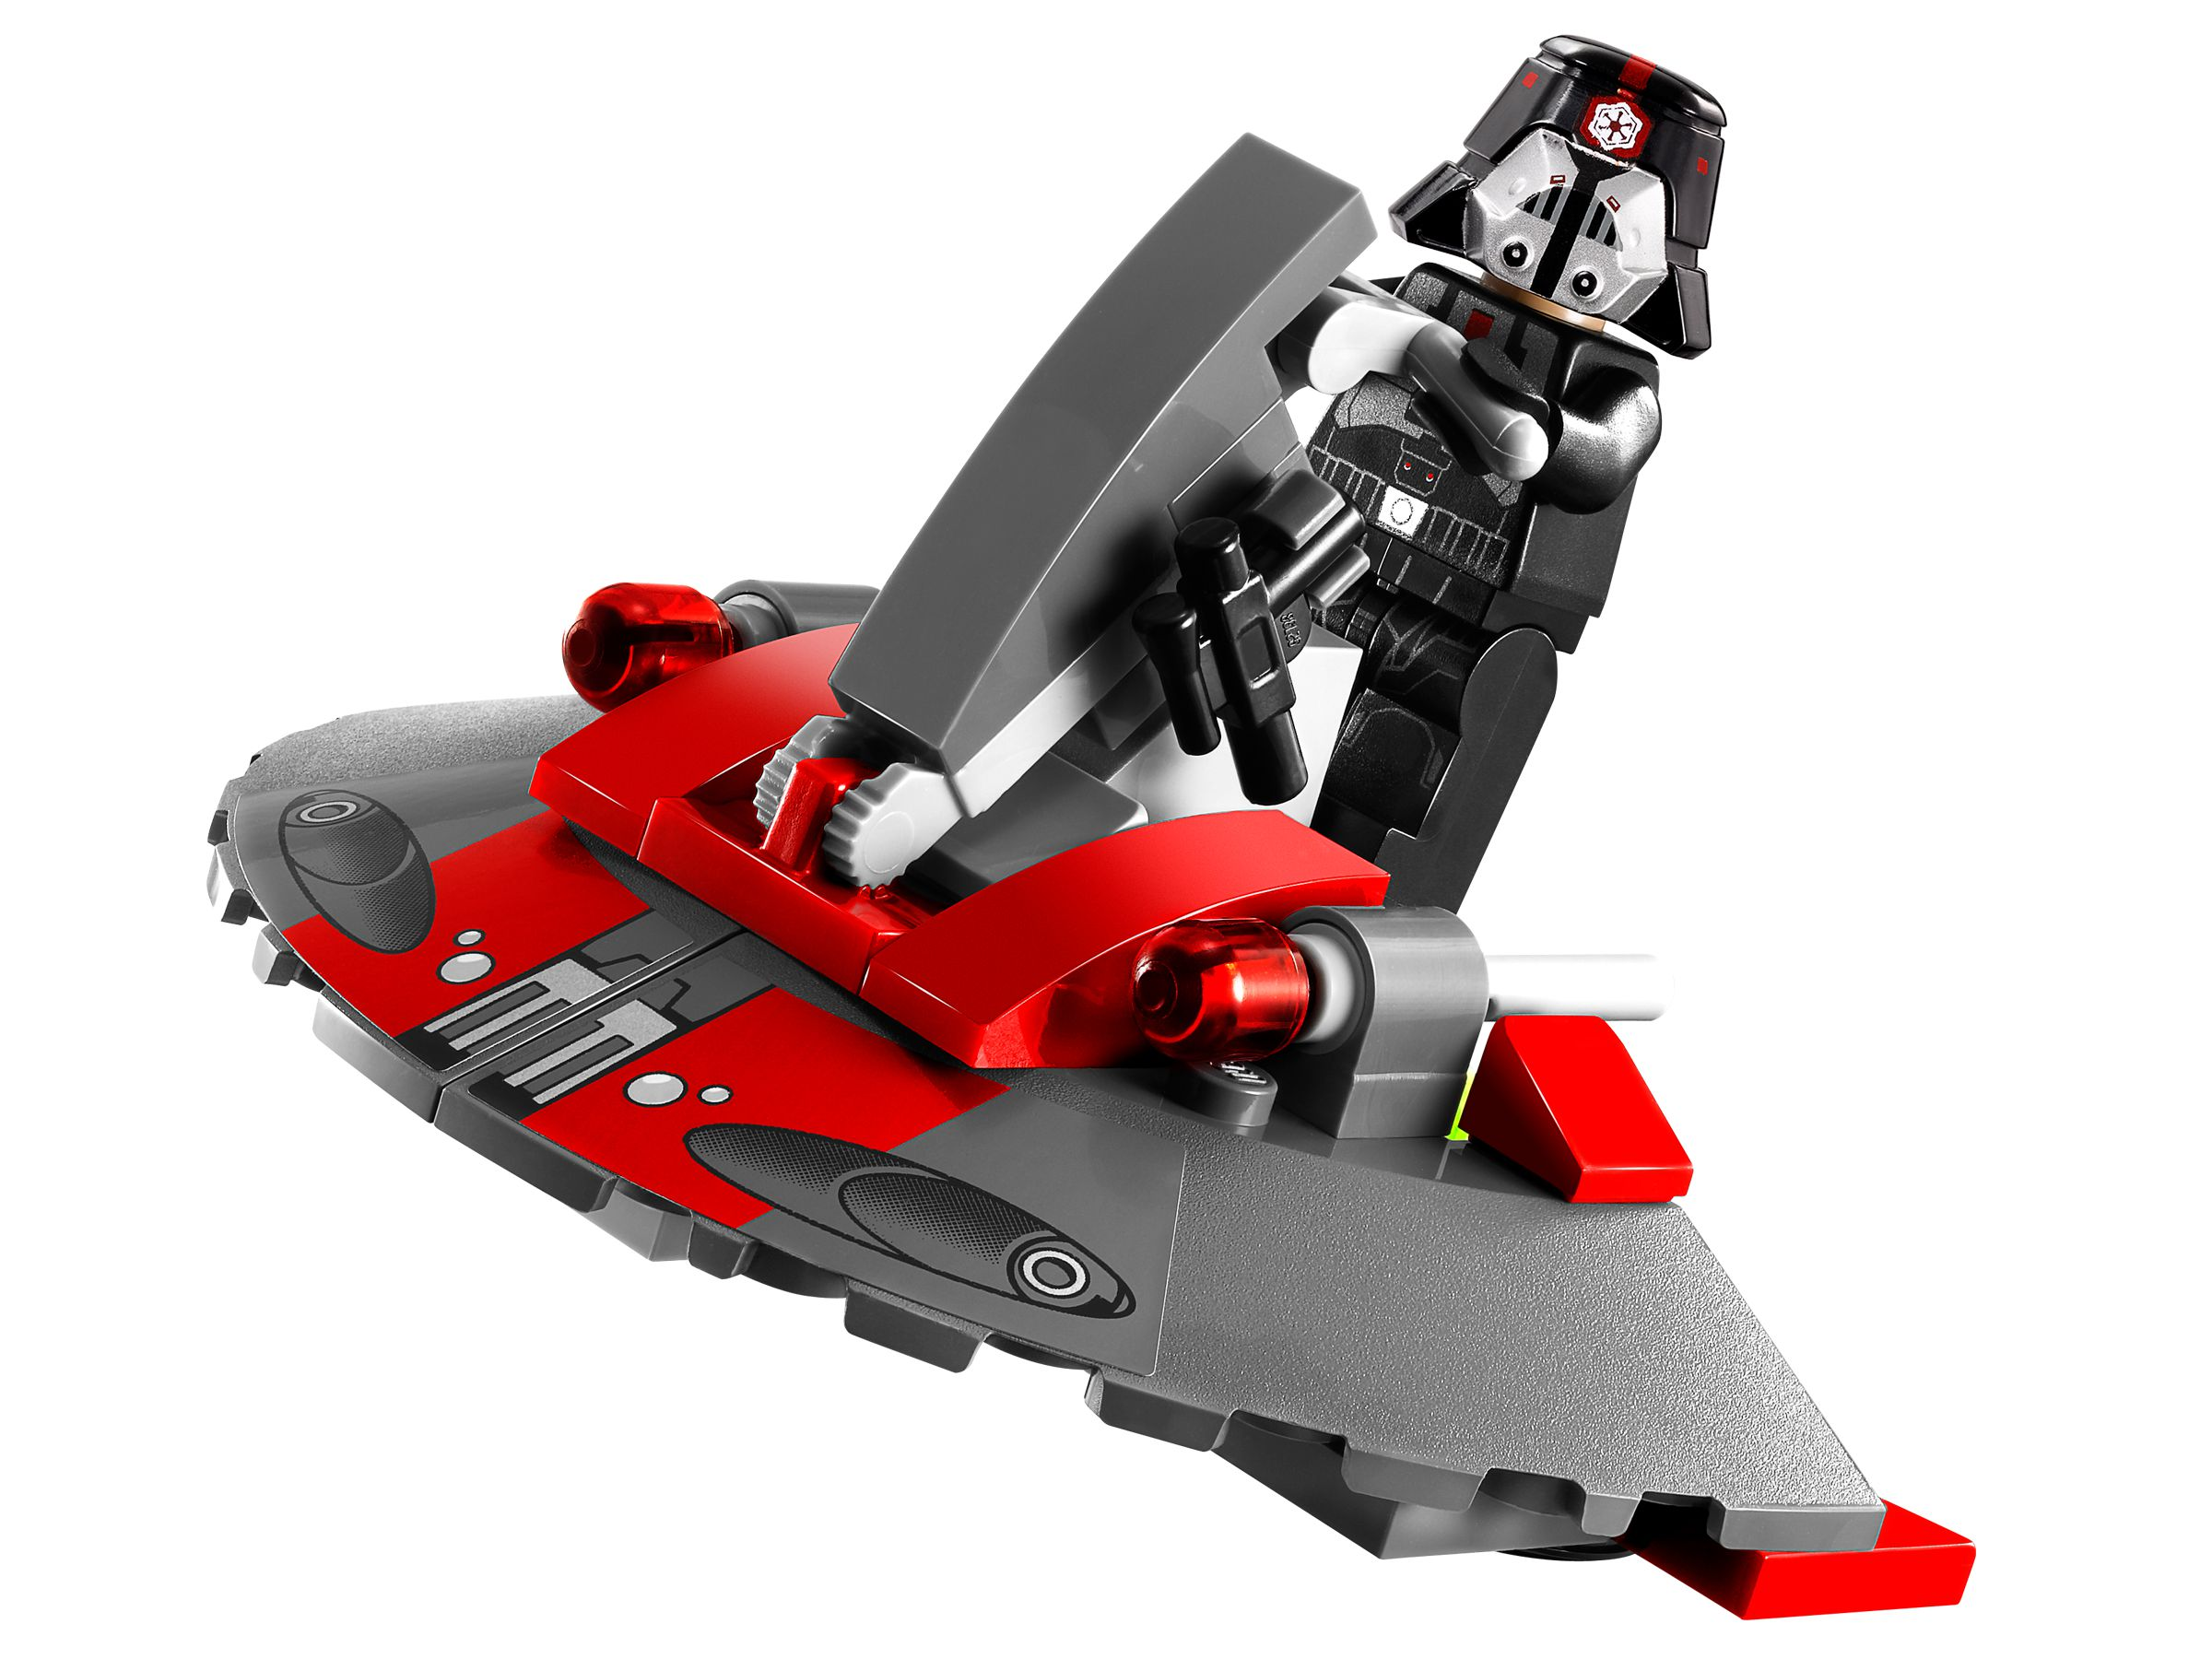 LEGO Star Wars 75001 Republic Troopers™ vs Sith™ Troopers LEGO_75001_alt2.jpg